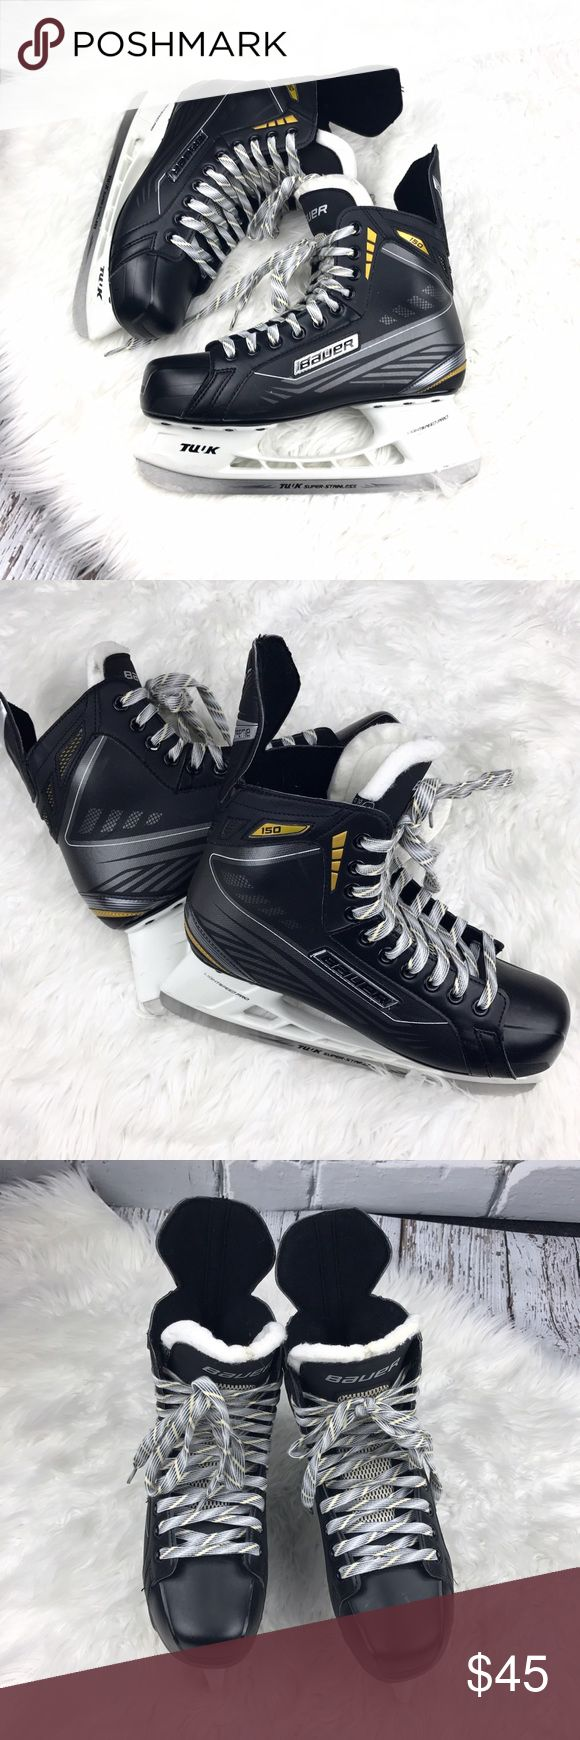 💕SALE💕Bauer Tuik Light Speed Pro Mens Ice Skates Awesome Bauer Tuik Light Speed Pro Mens Ice Skates Bauer Shoes